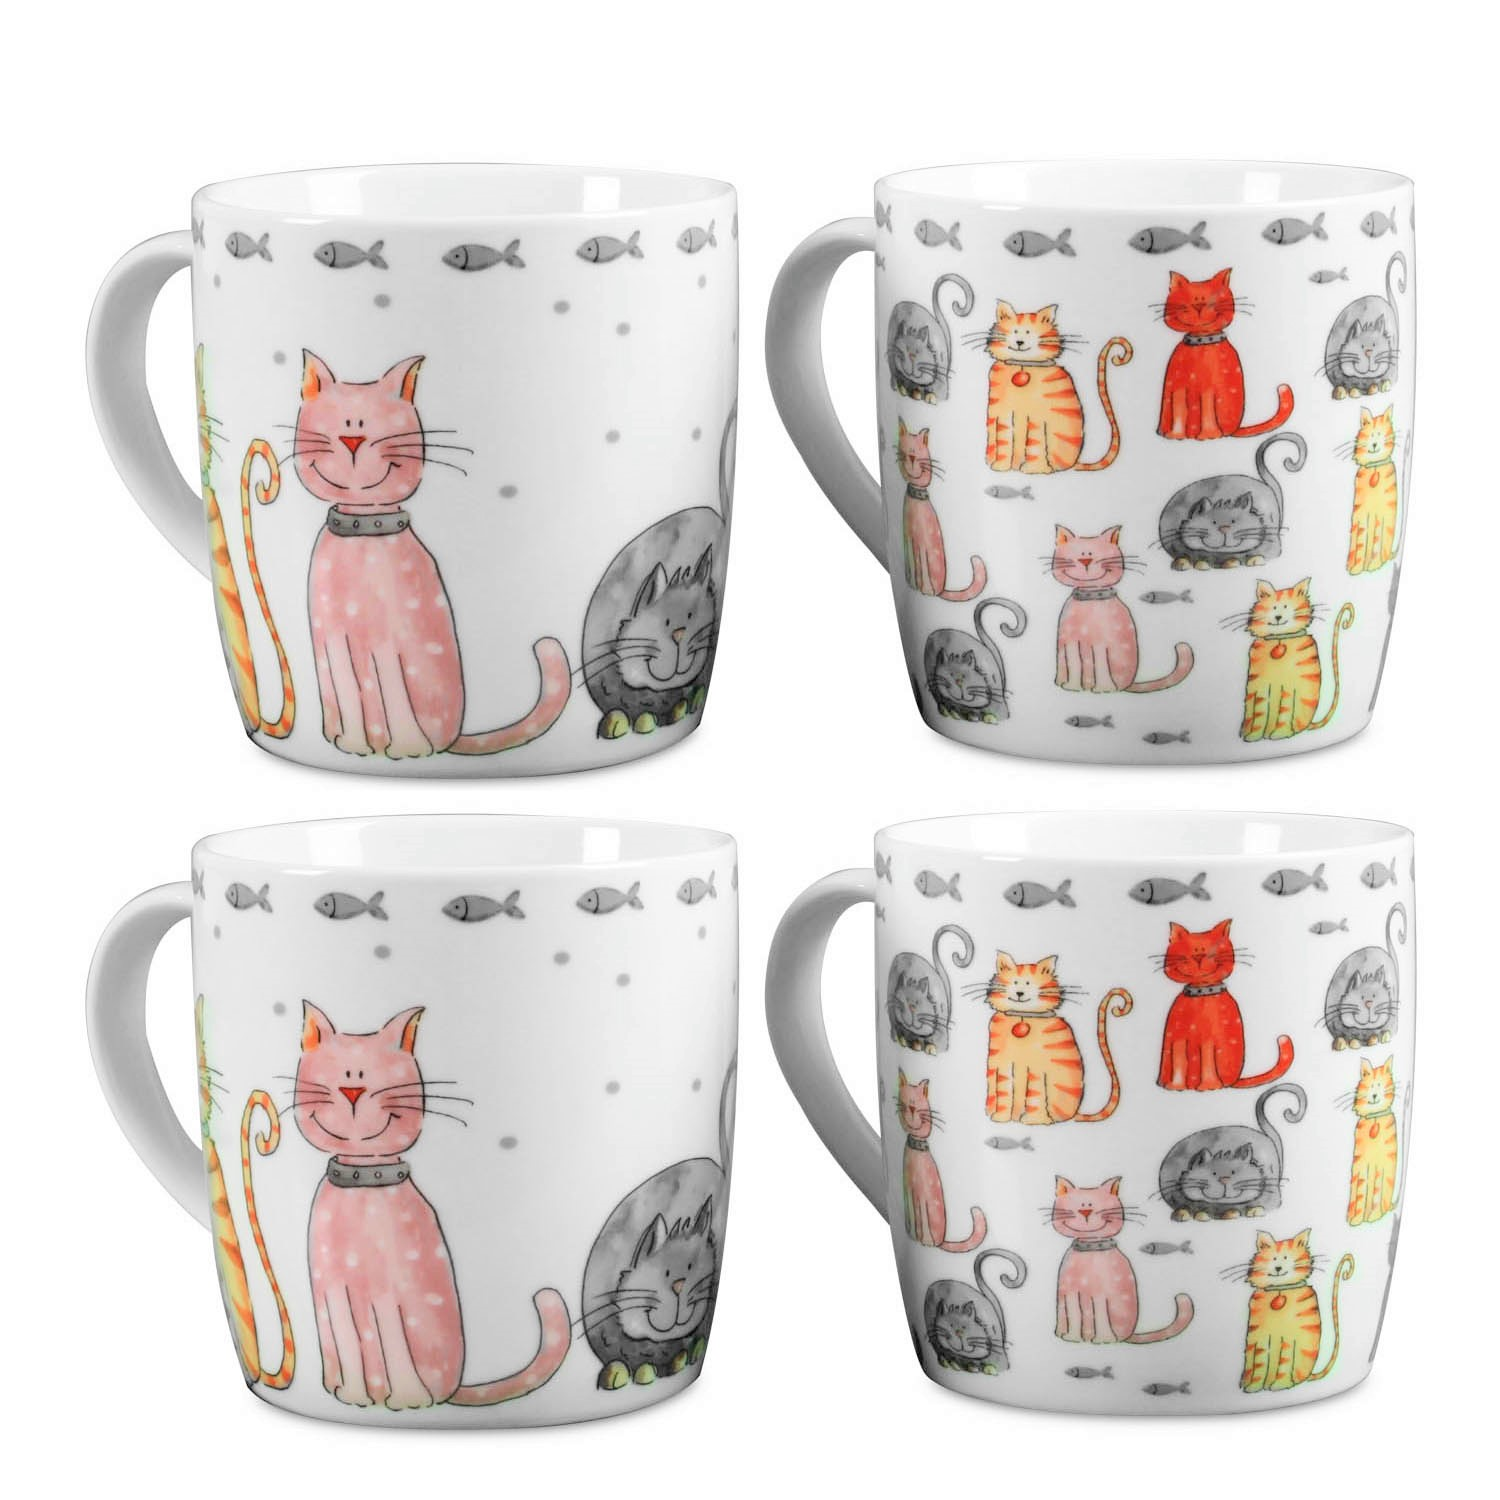 Set Of 4 Animated Doodle Cat Lovers Print Coffee Mugs Asstd 2 Designs Gift Idea Ebay